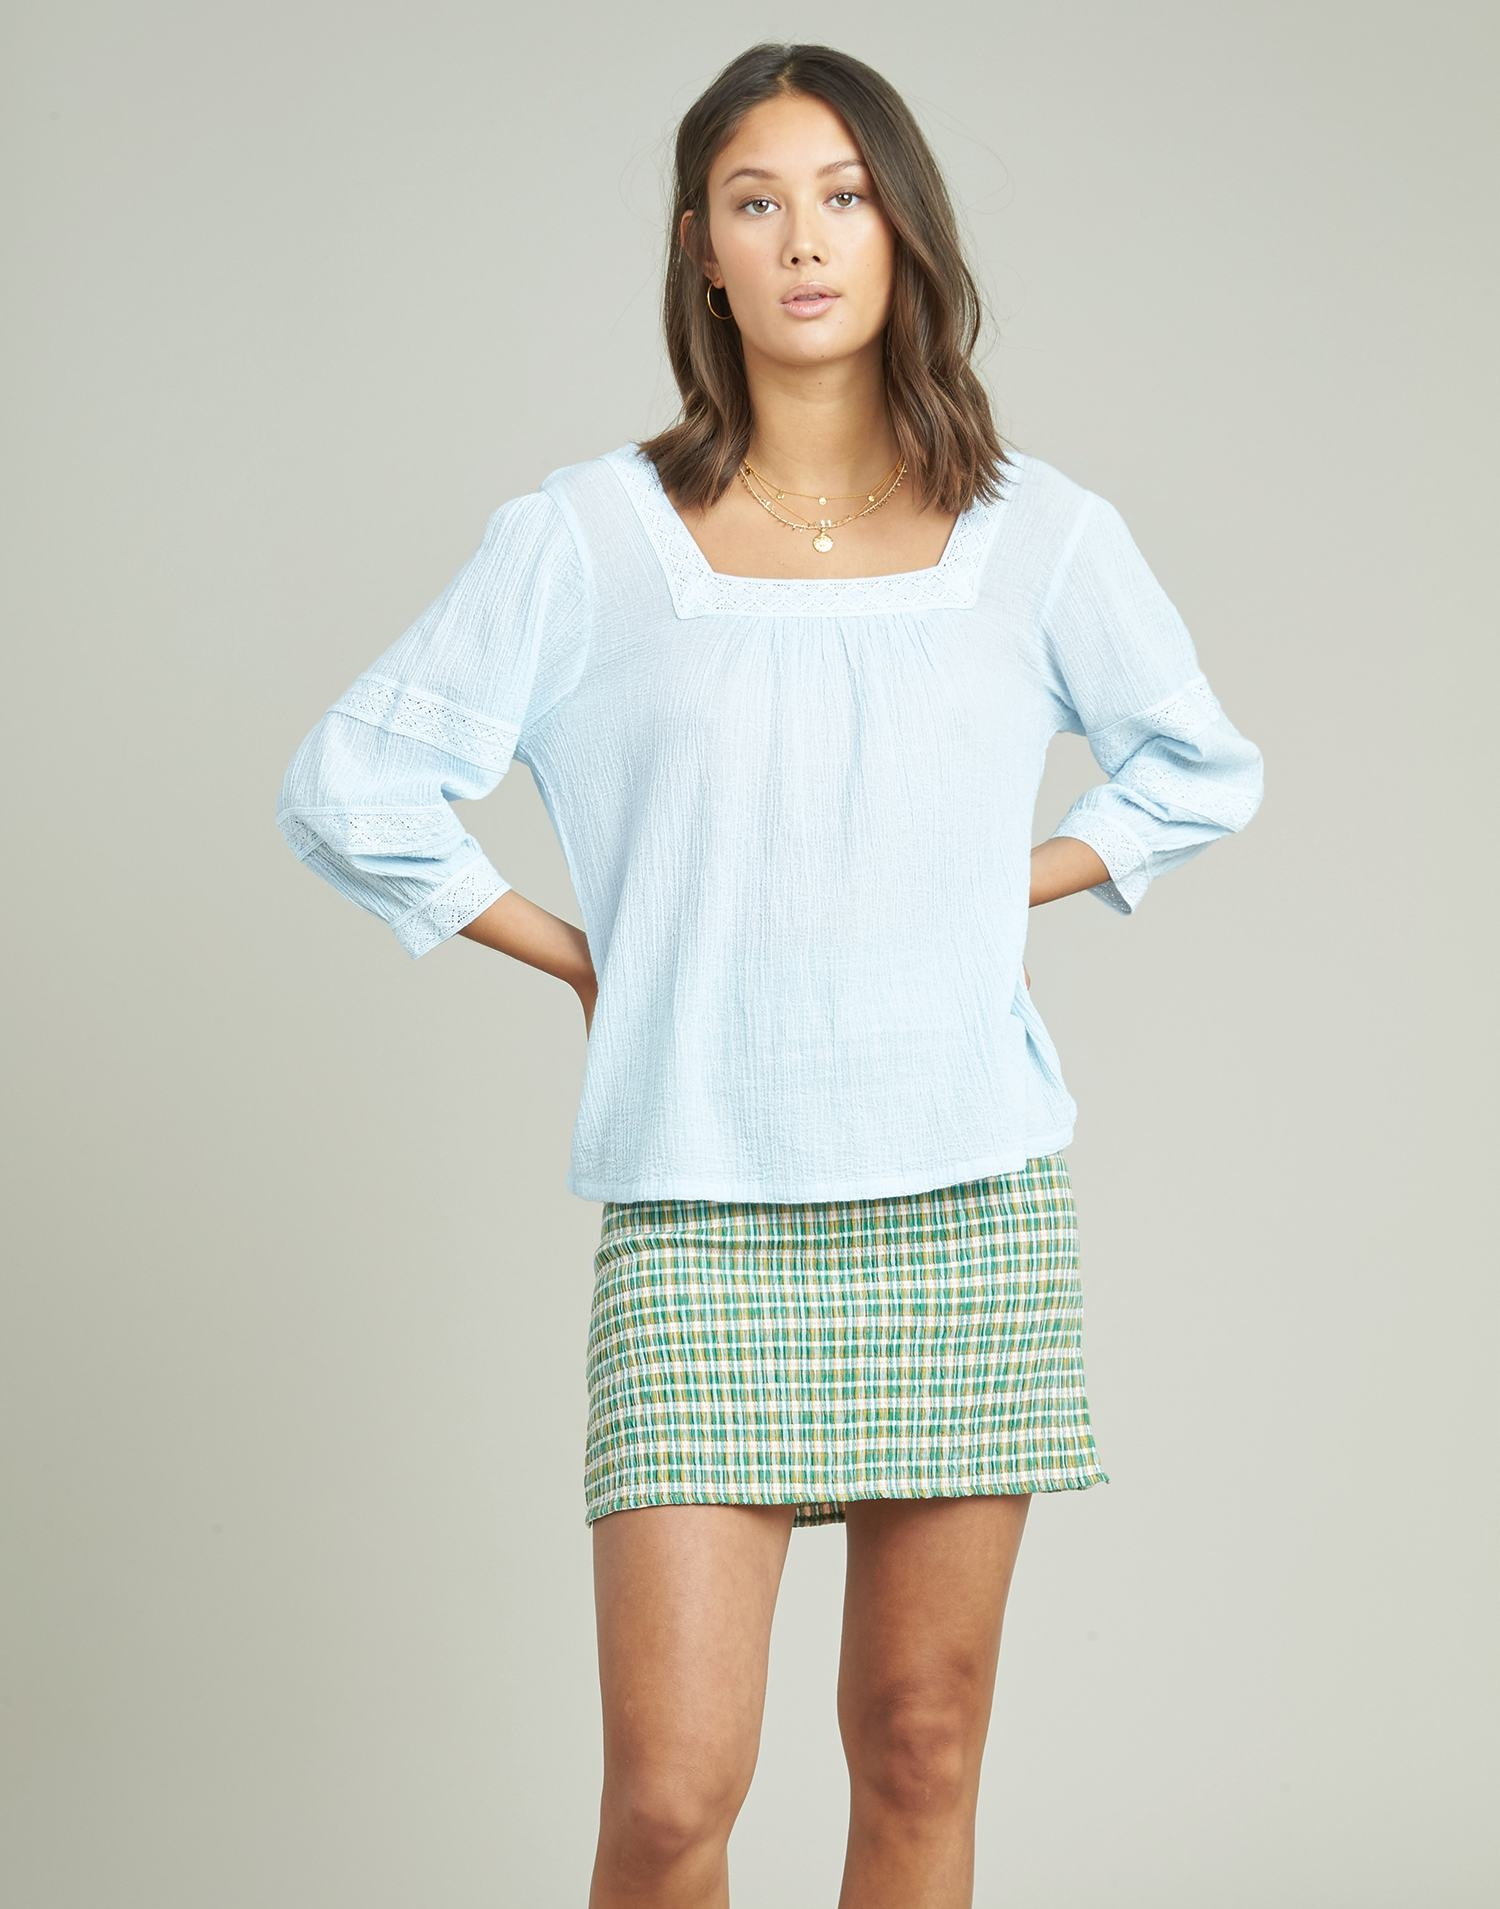 Square neckline shirt with lace